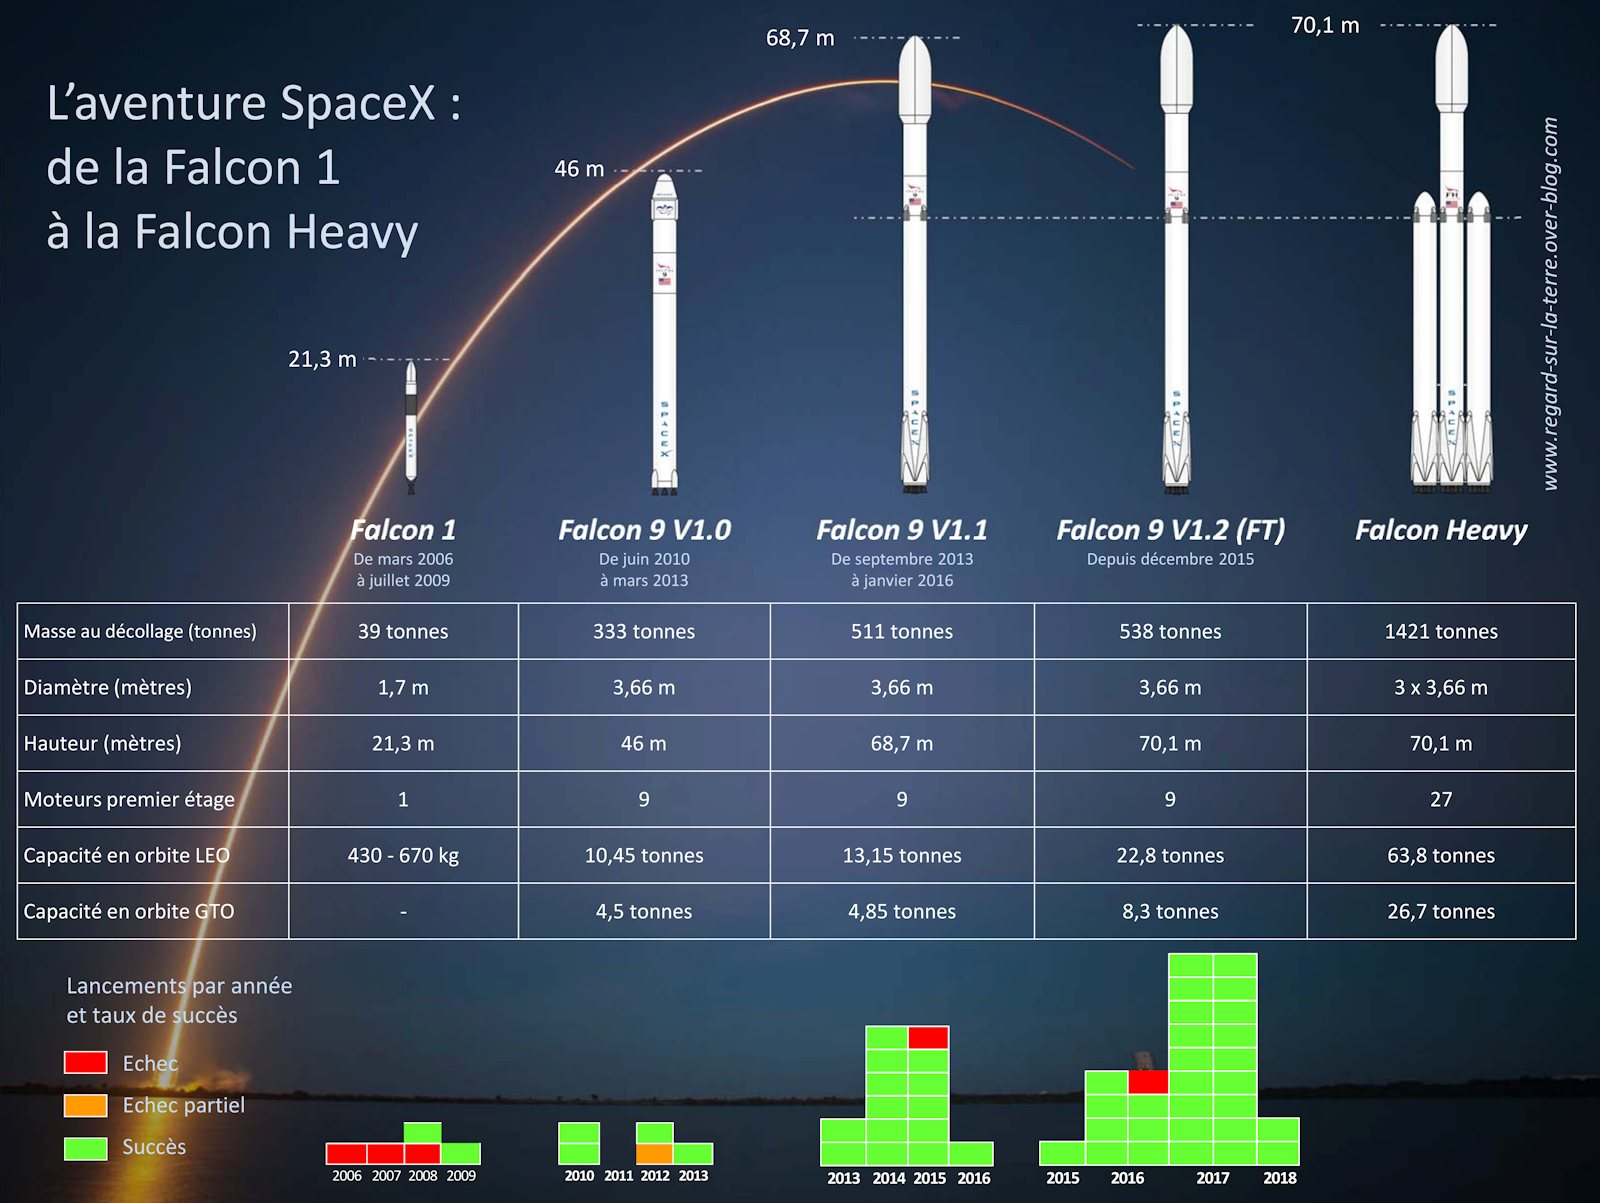 L'aventure%20SpaceX%20-%20Falcon%201%20-